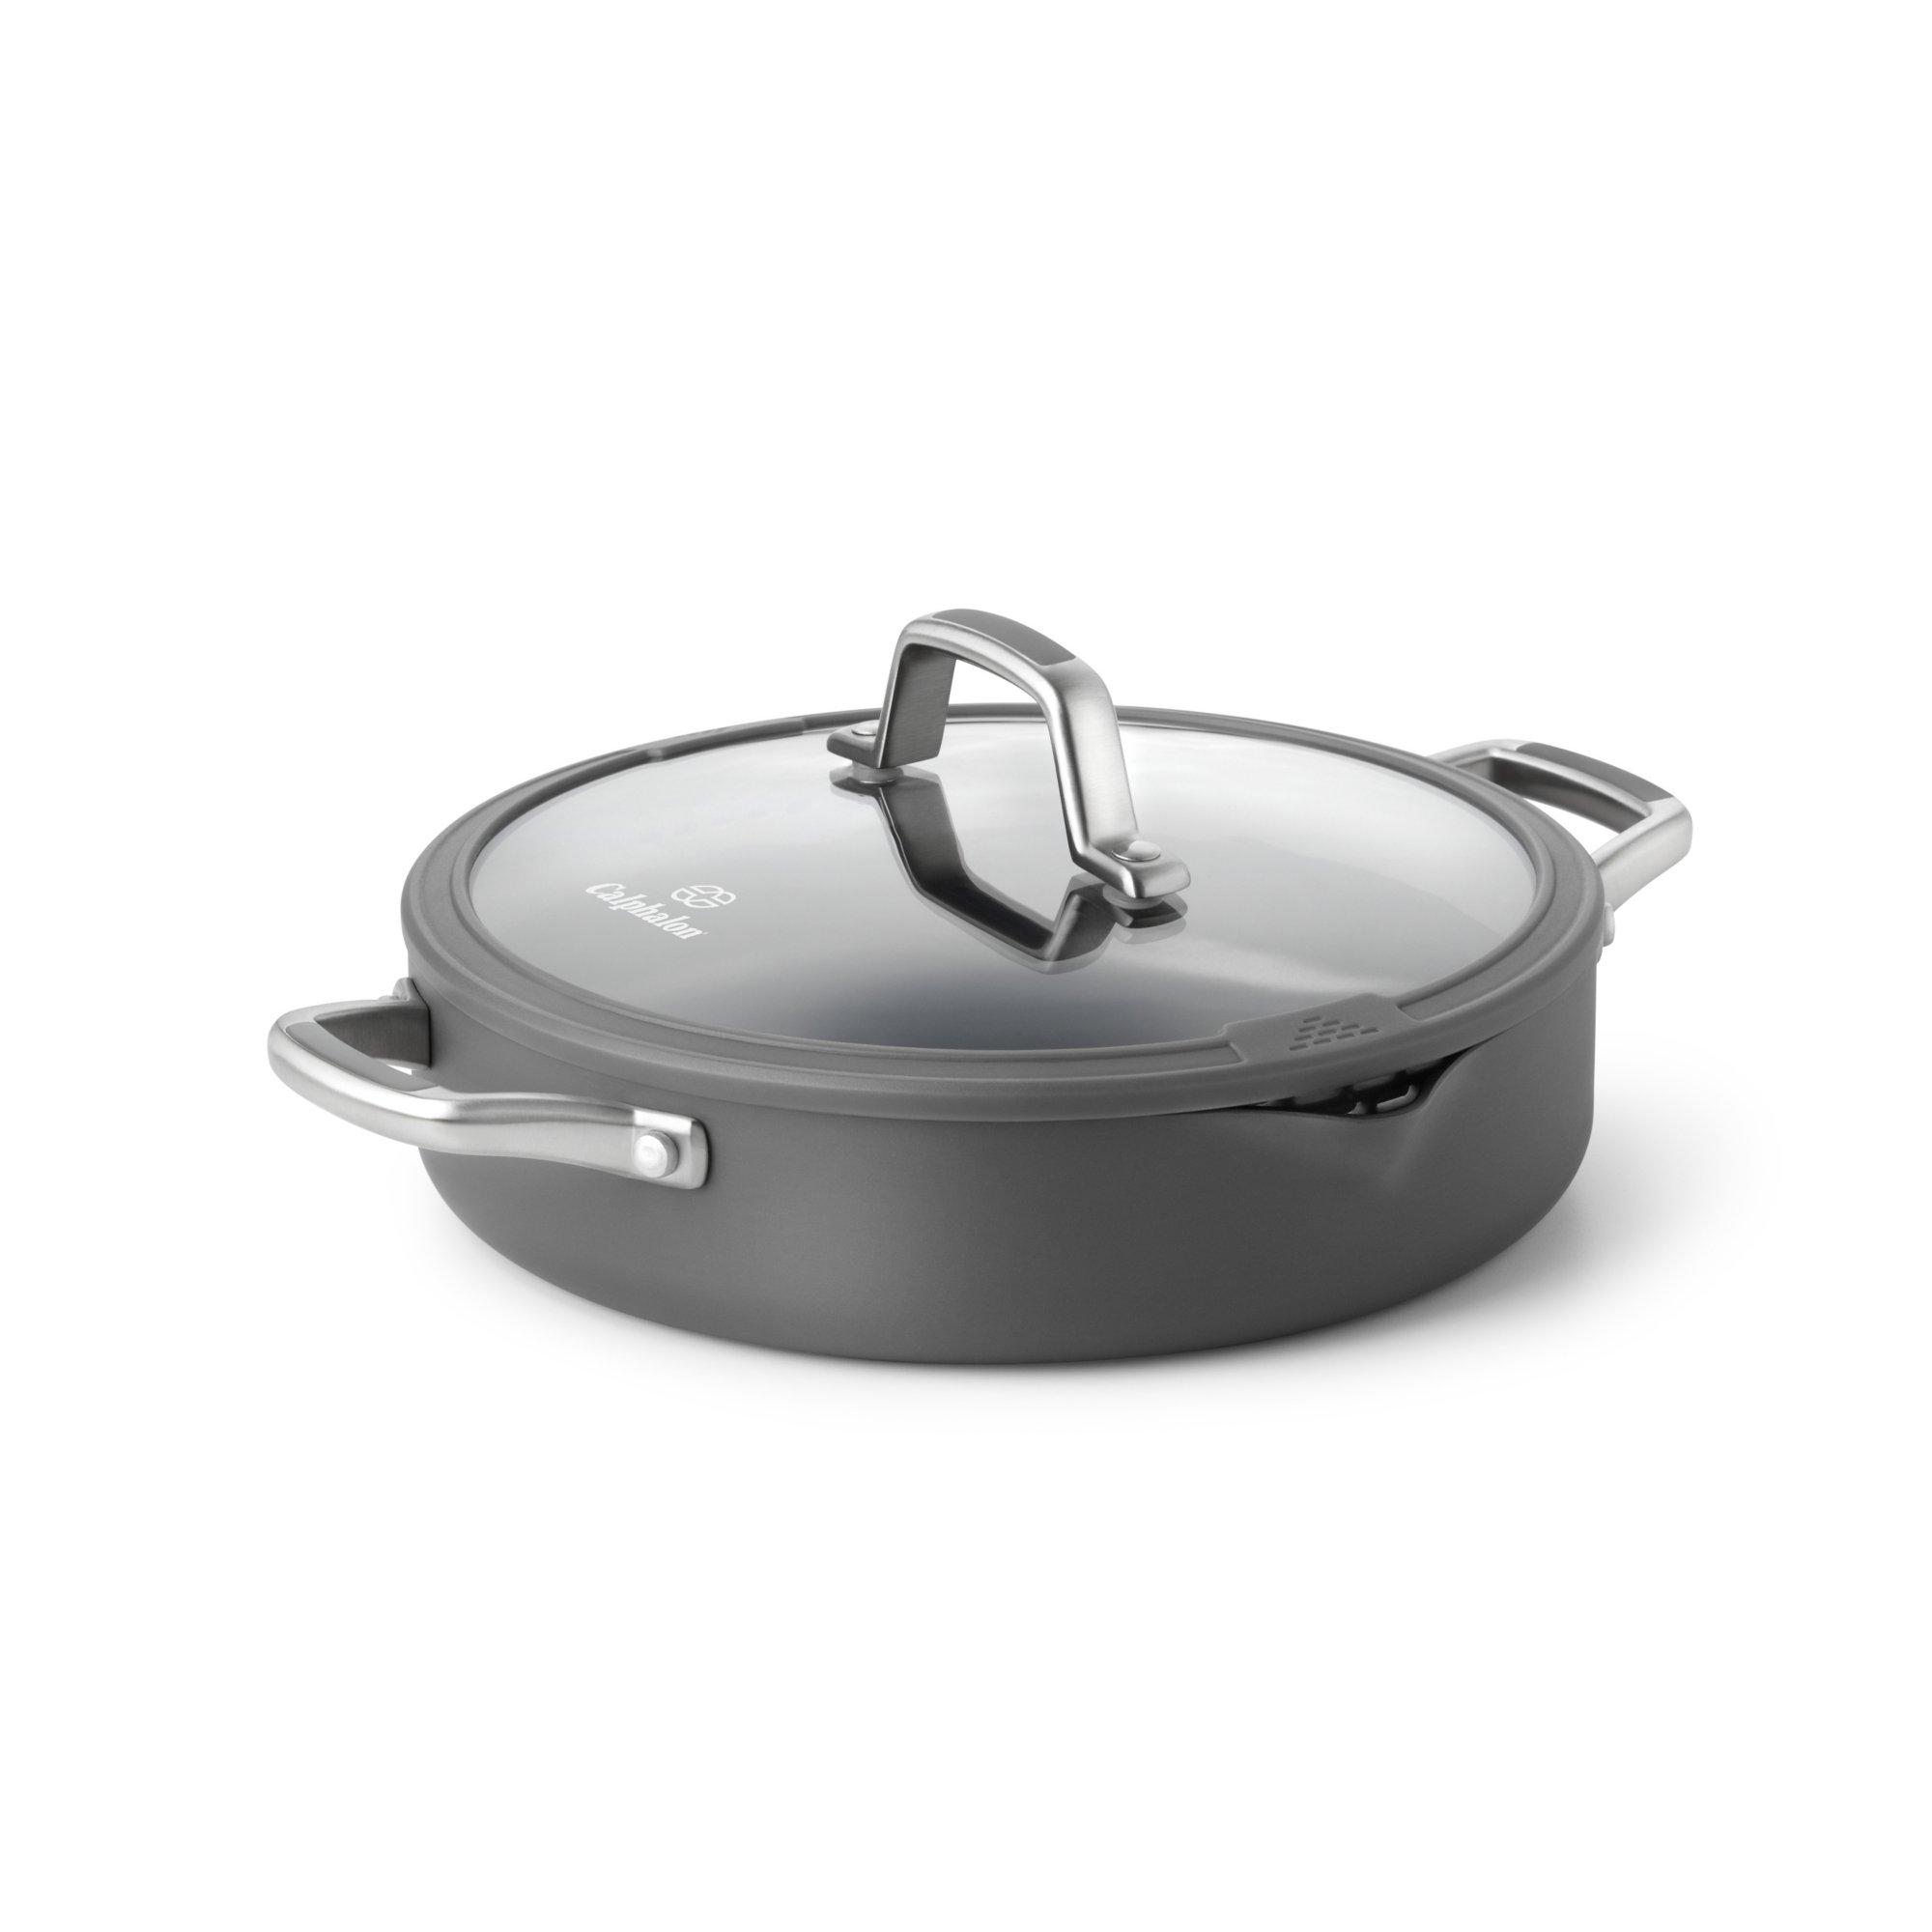 Calphalon Simply Easy System Nonstick 3-Quart Sauteuse and Cover